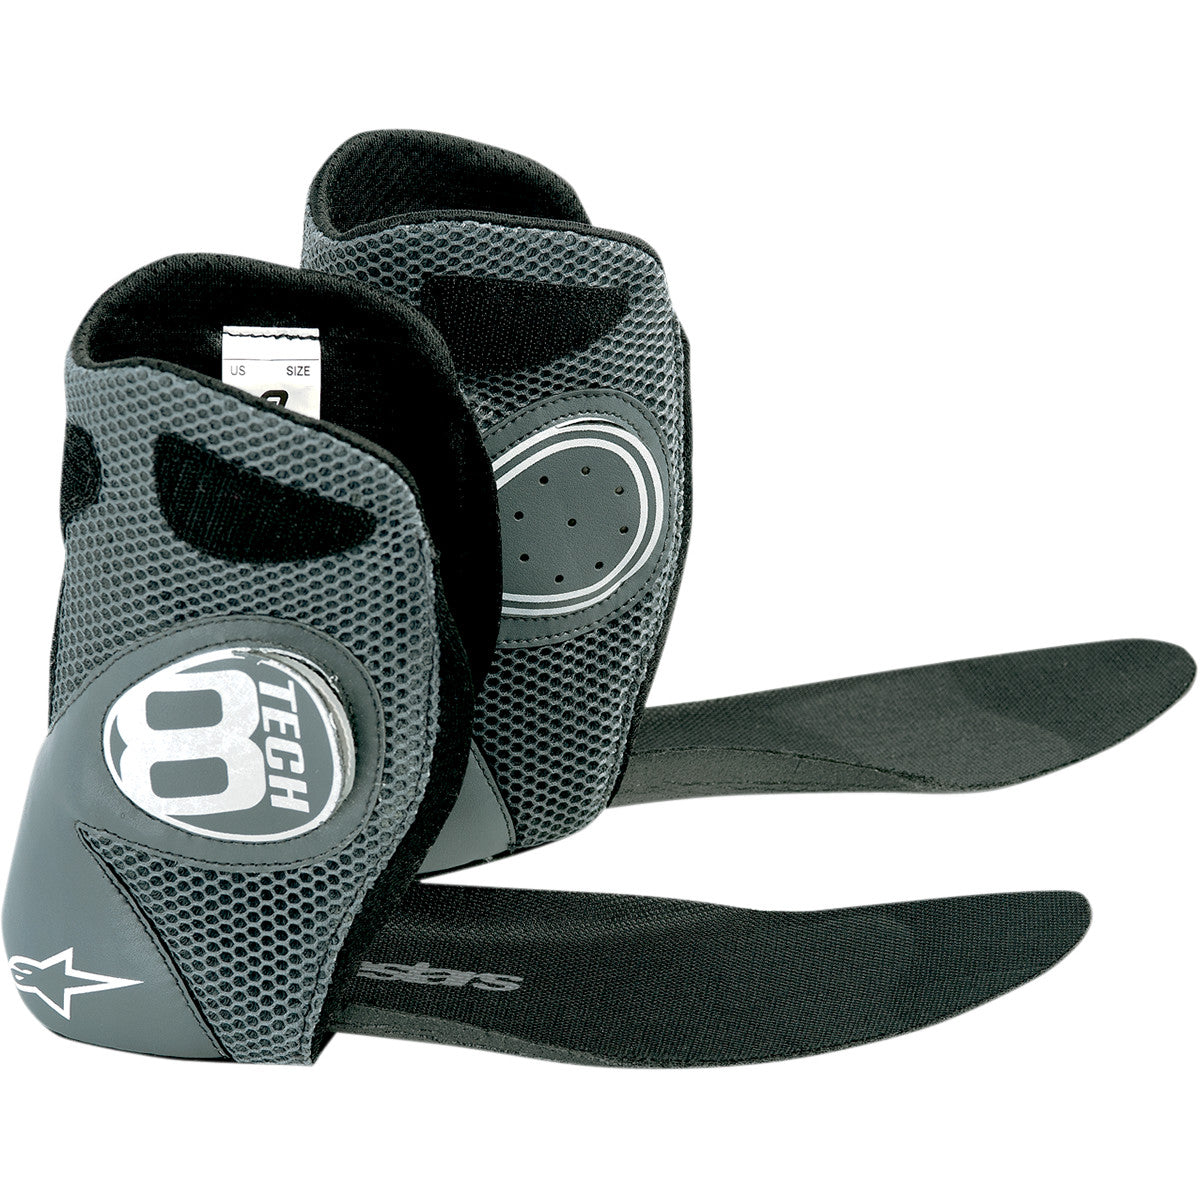 Alpinestars(MX) Tech 8 Light Parts And Accessories